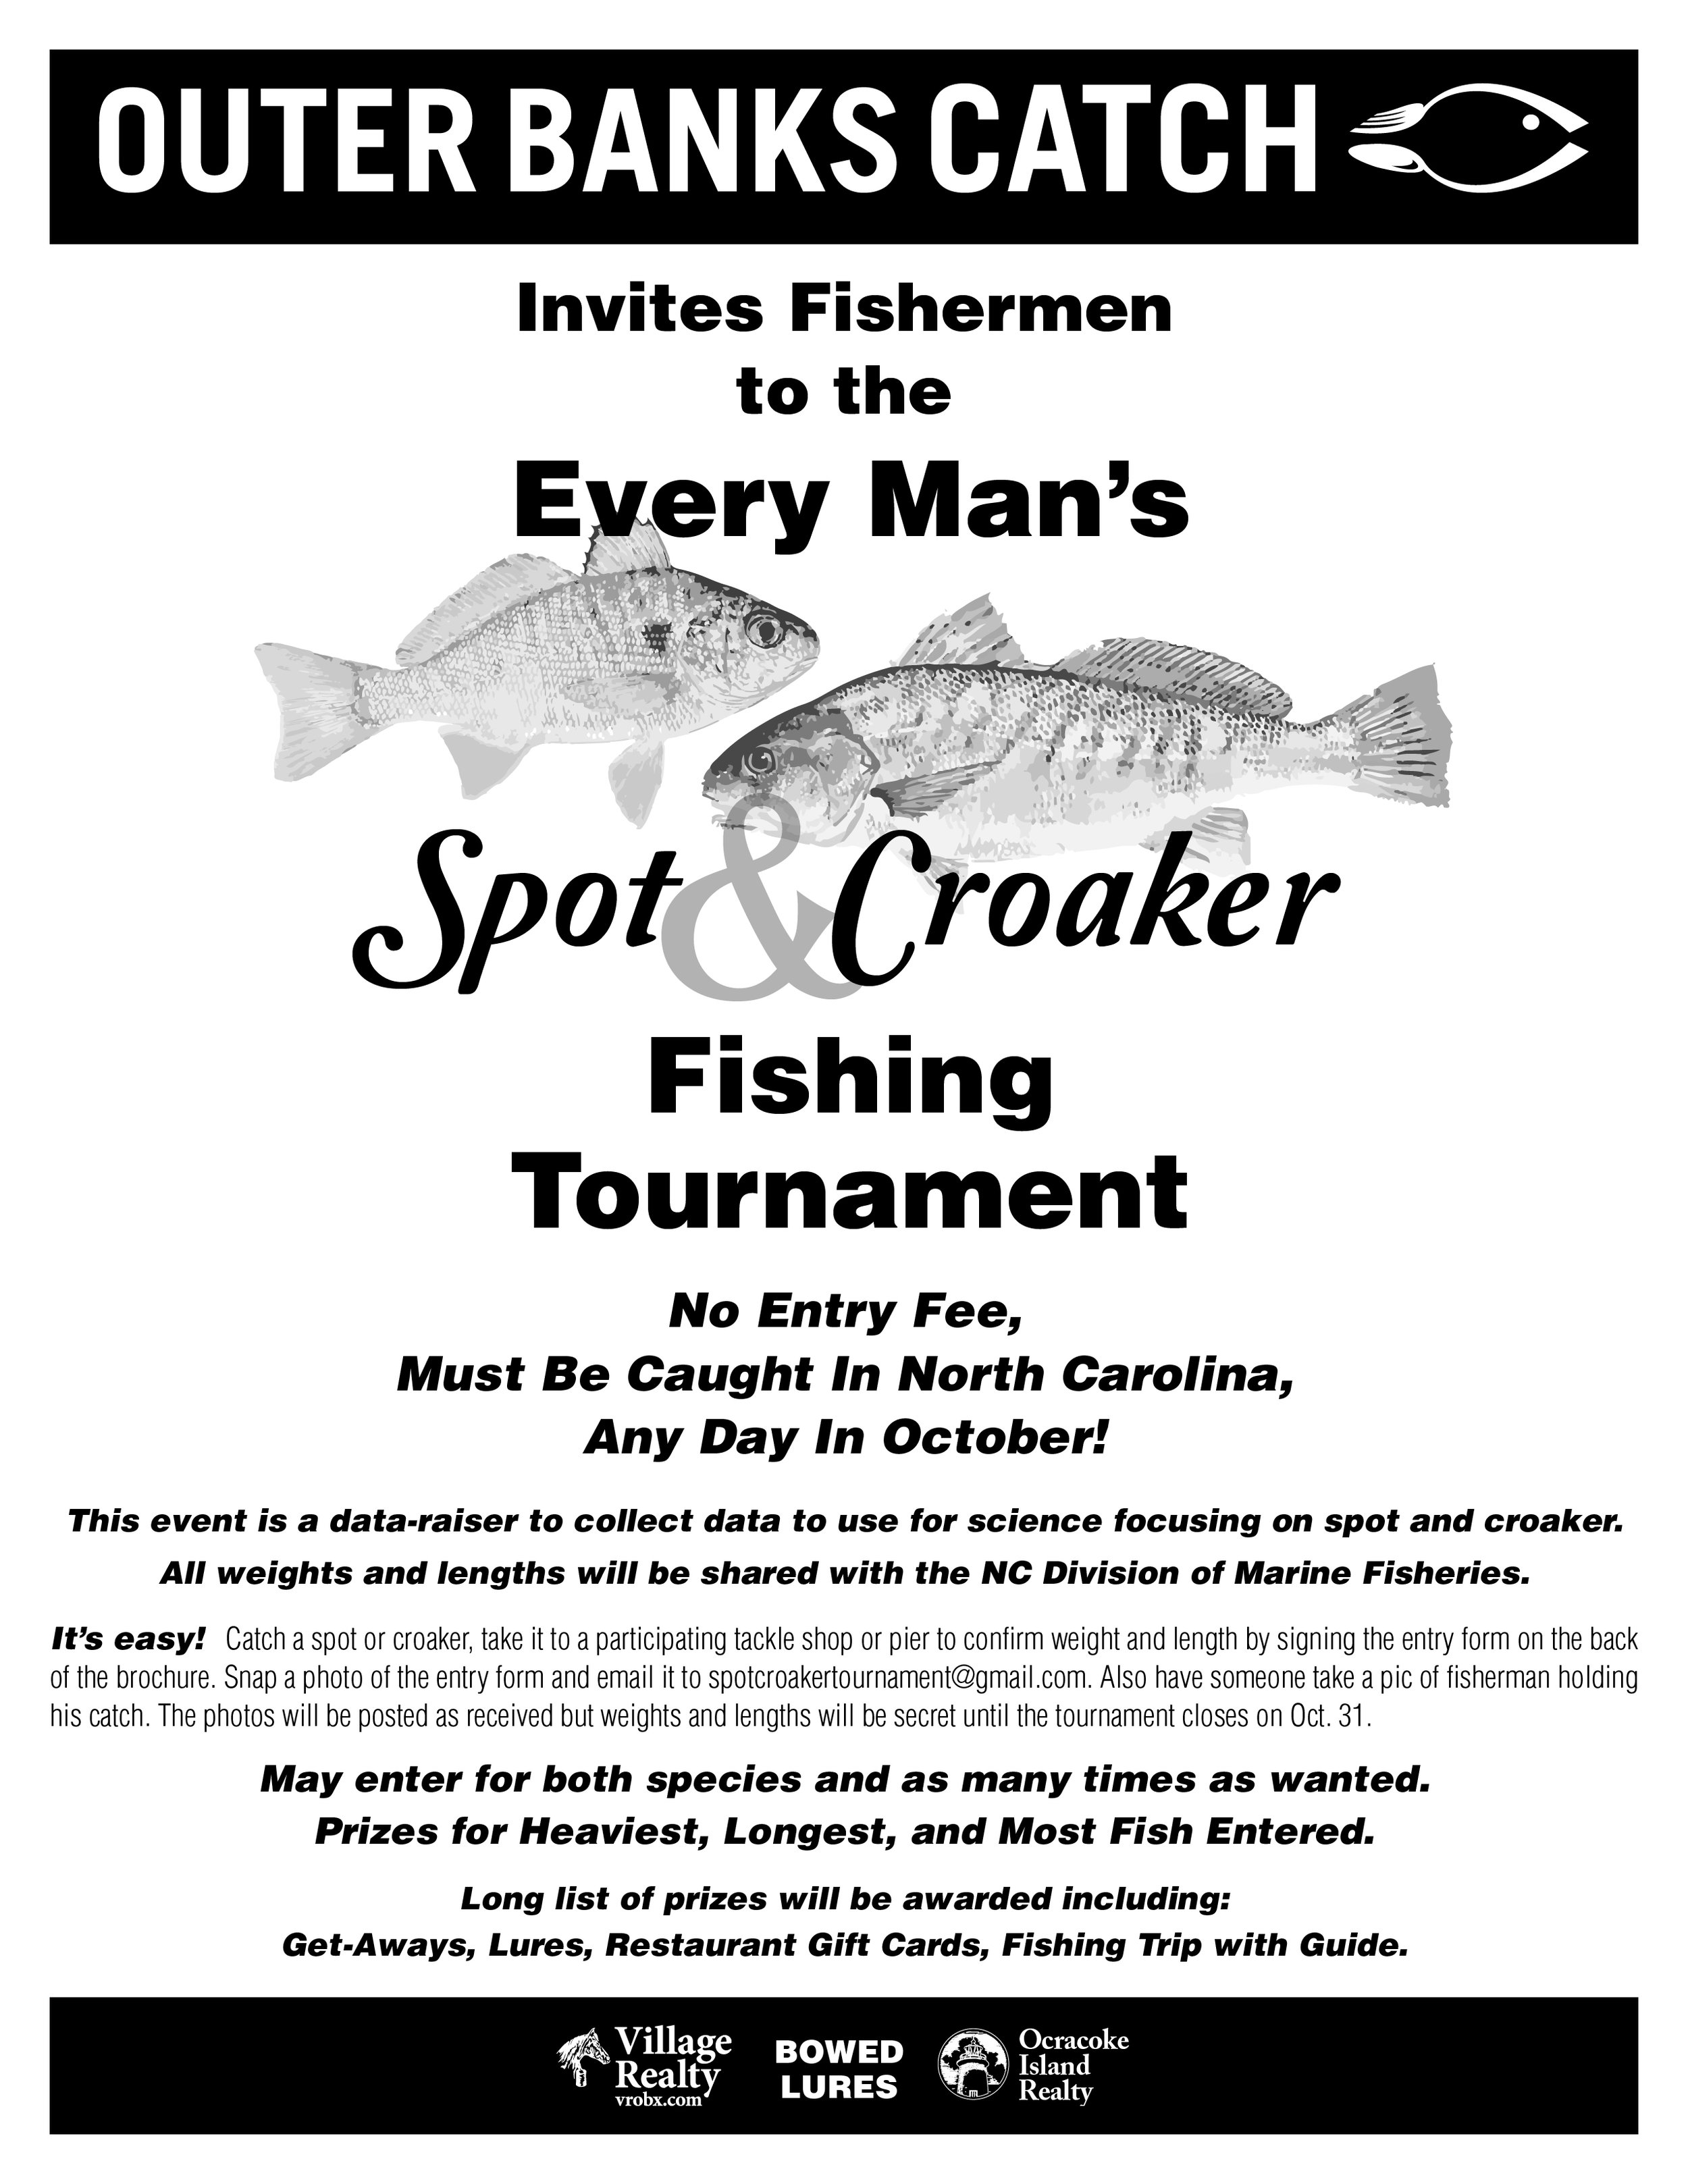 outer banks catch every man's spot and croacker fishing tournament.jpg